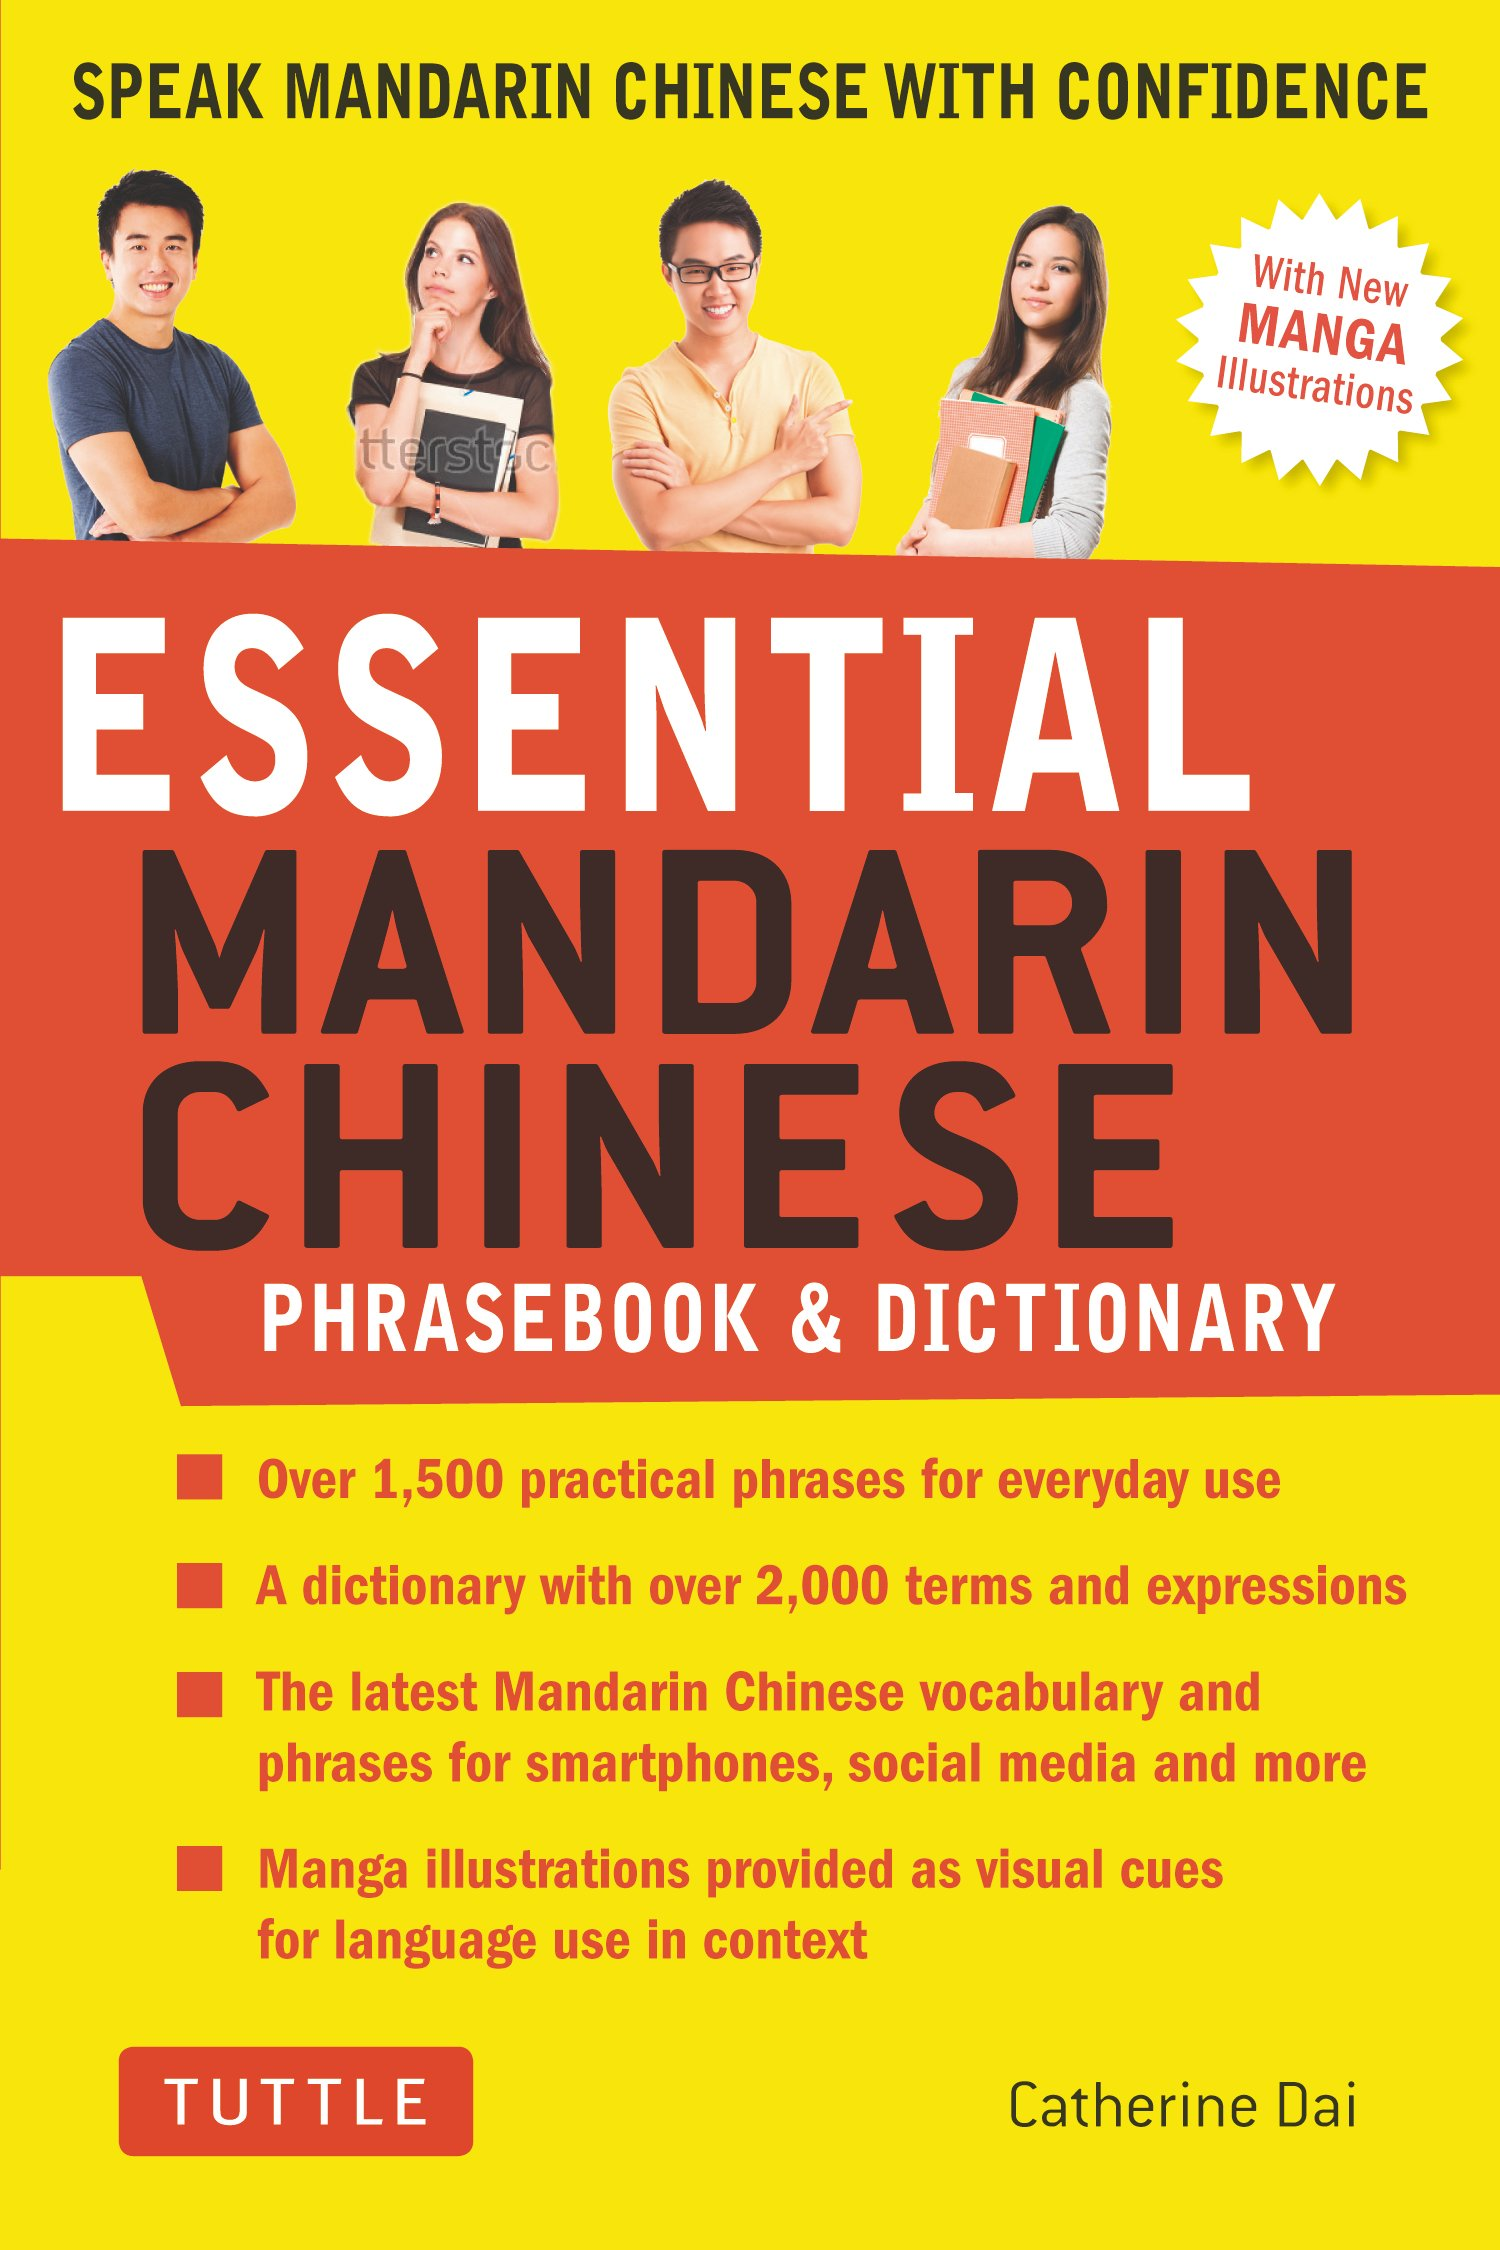 Essential Mandarin Chinese Phrasebook & Dictionary : Speak Chinese with Confidence!